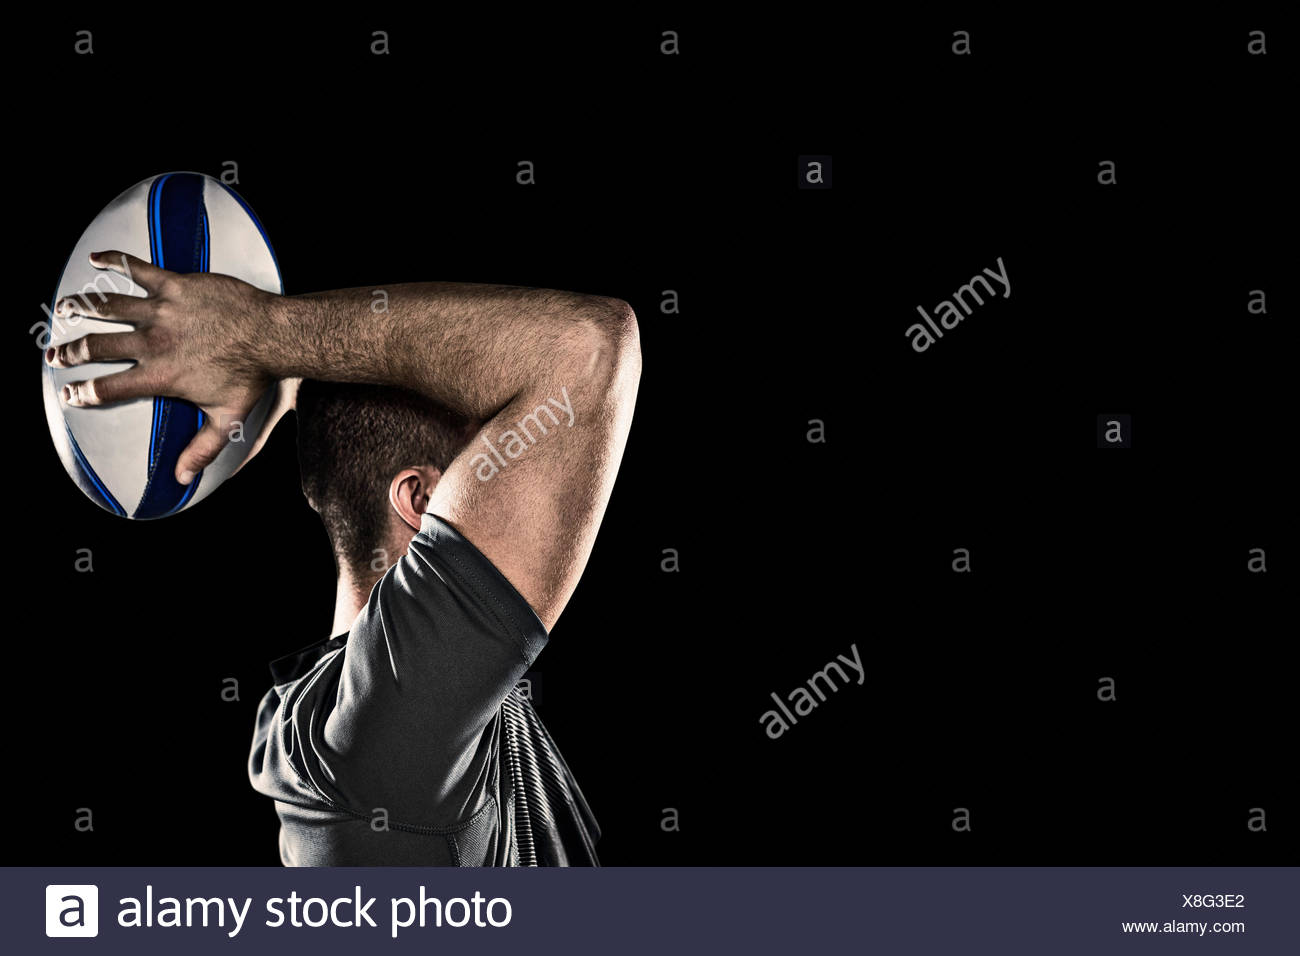 Composite image of rugby player throwing ball - Stock Image